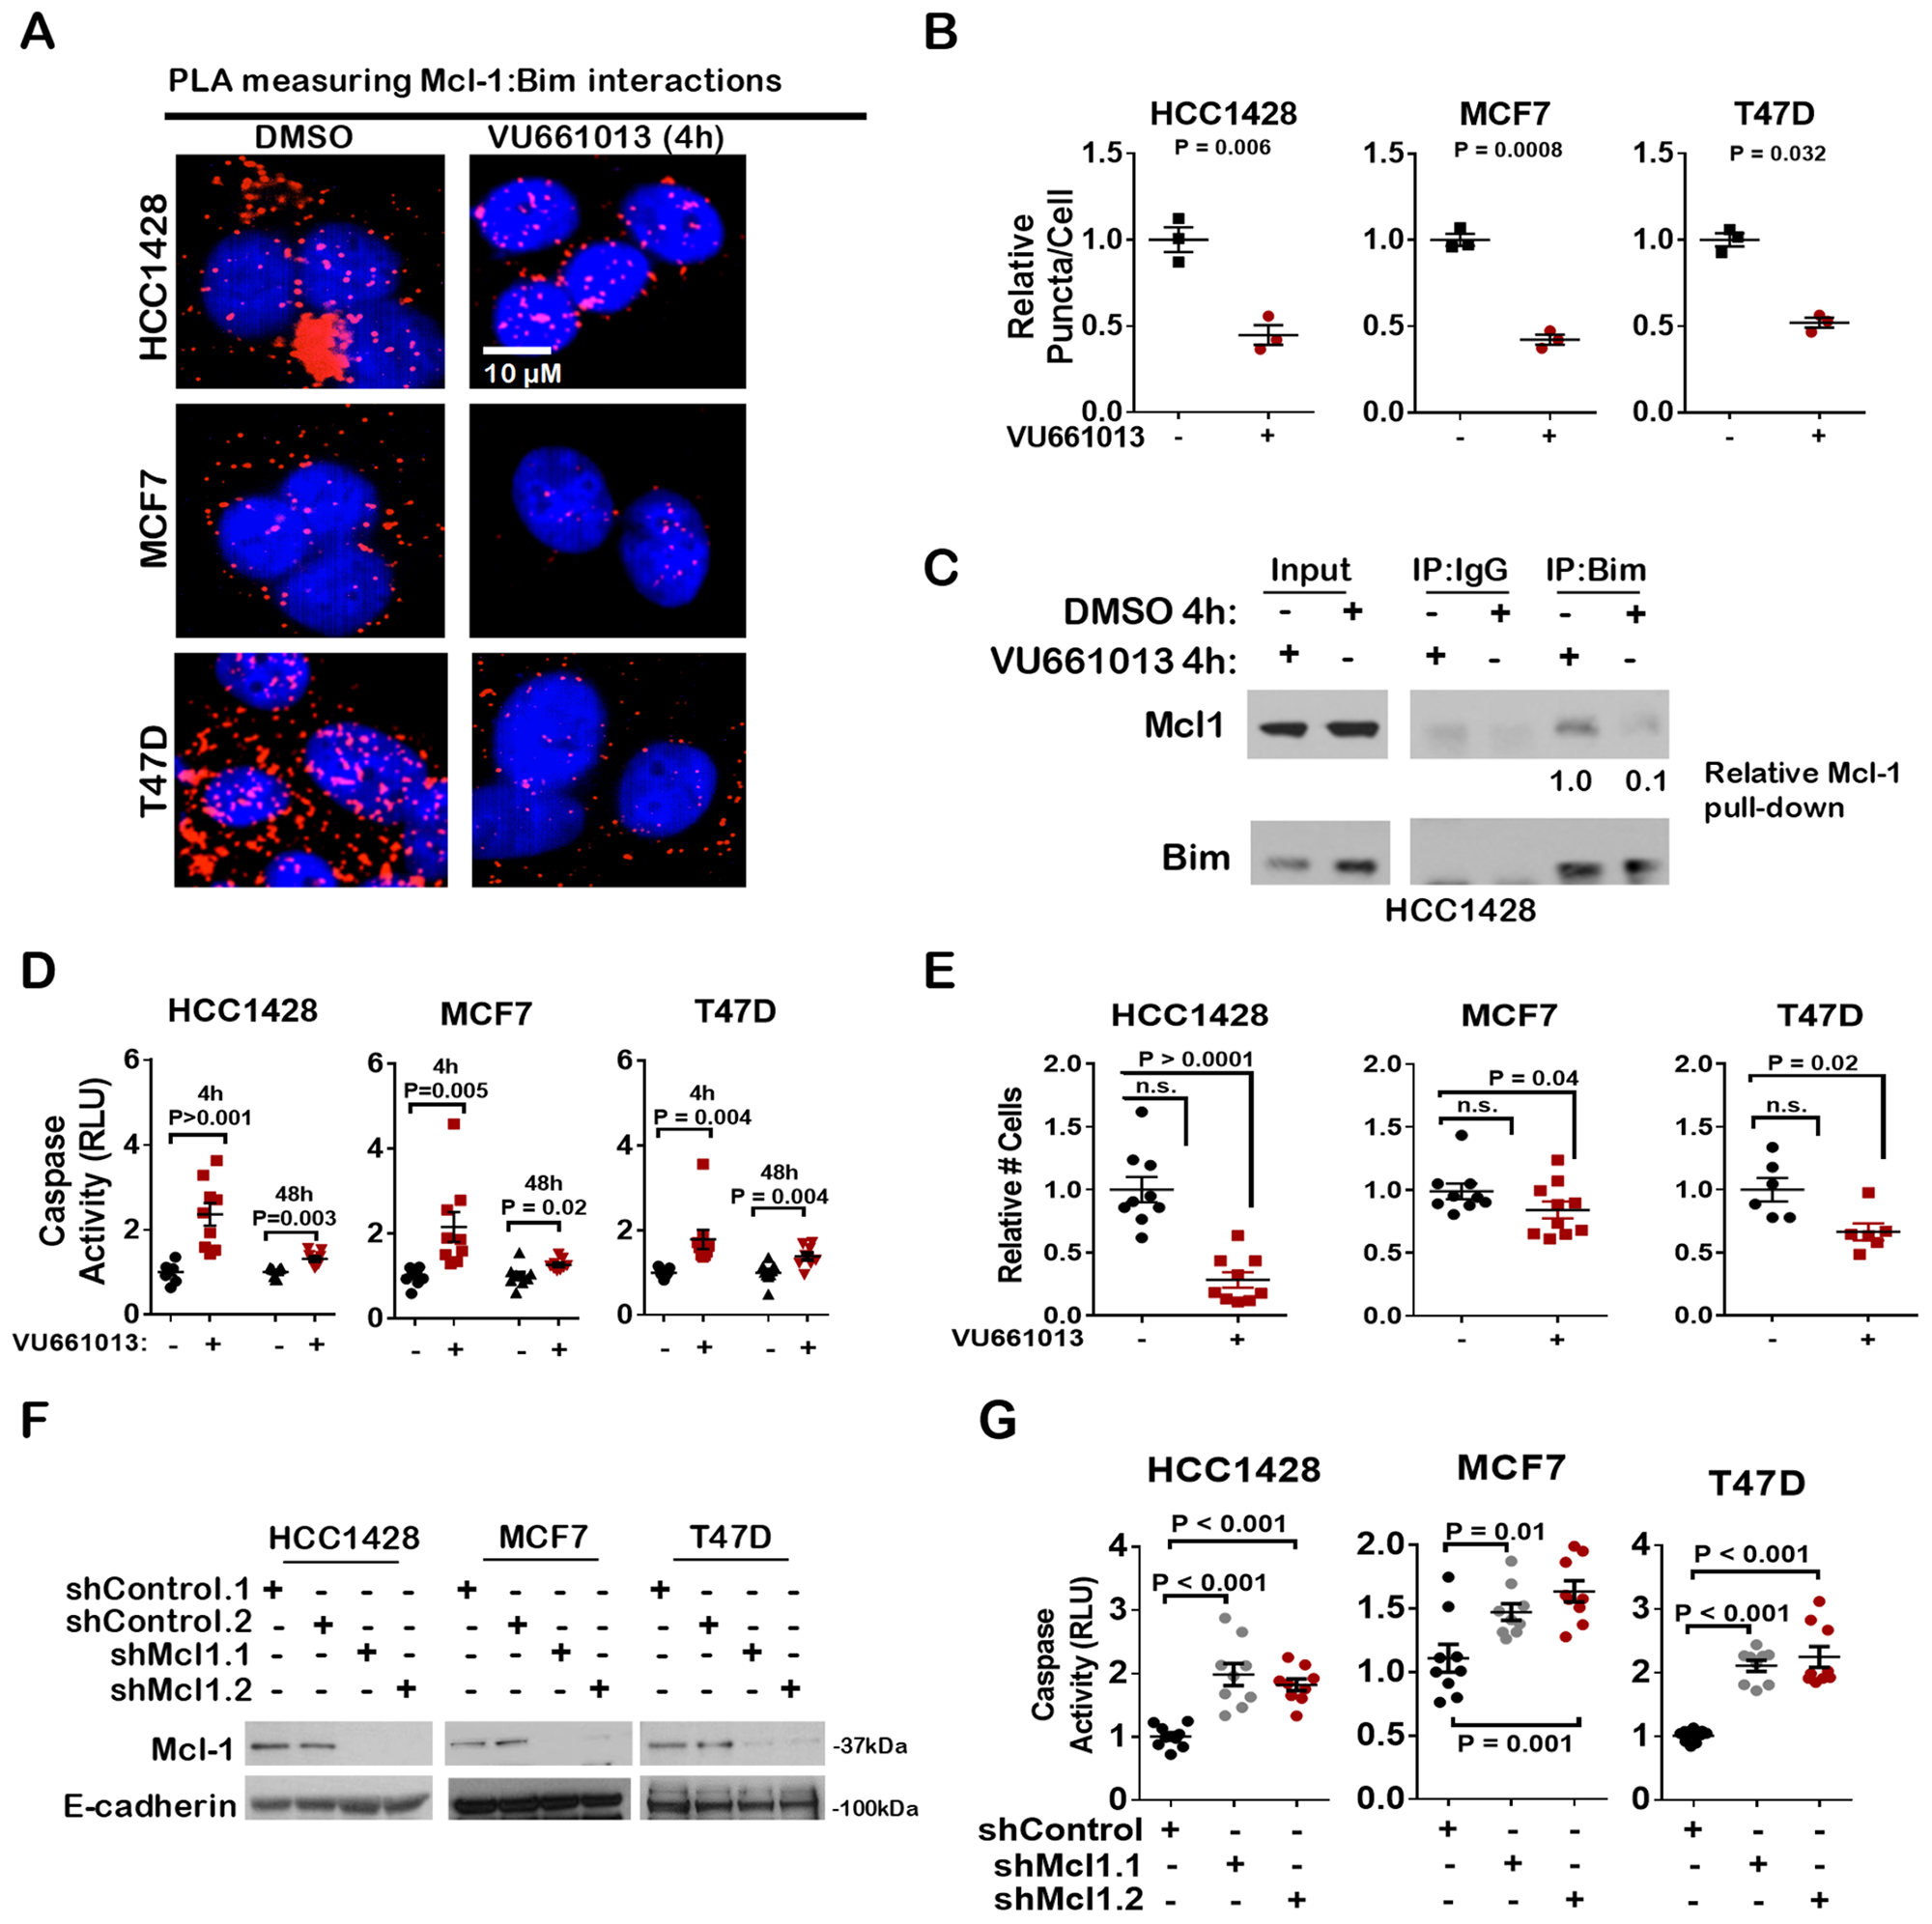 The novel Mcl-1 inhibitor VU-661013 bocks Mcl-1 BIM interaction and induces apoptosis in ER+ breast cancer cells.